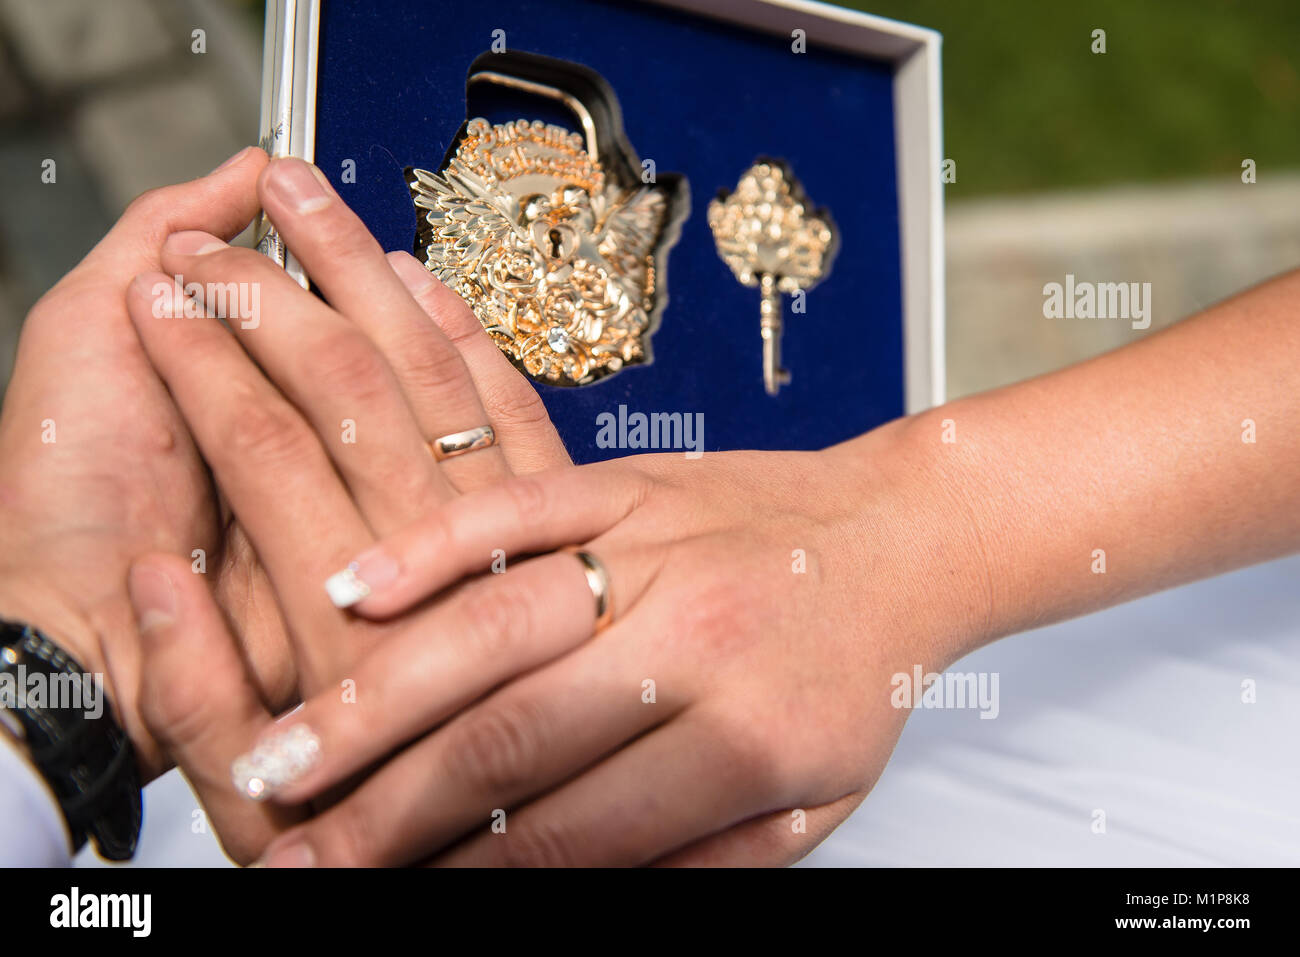 Close up hands of newlywed and wedding lock - Stock Image